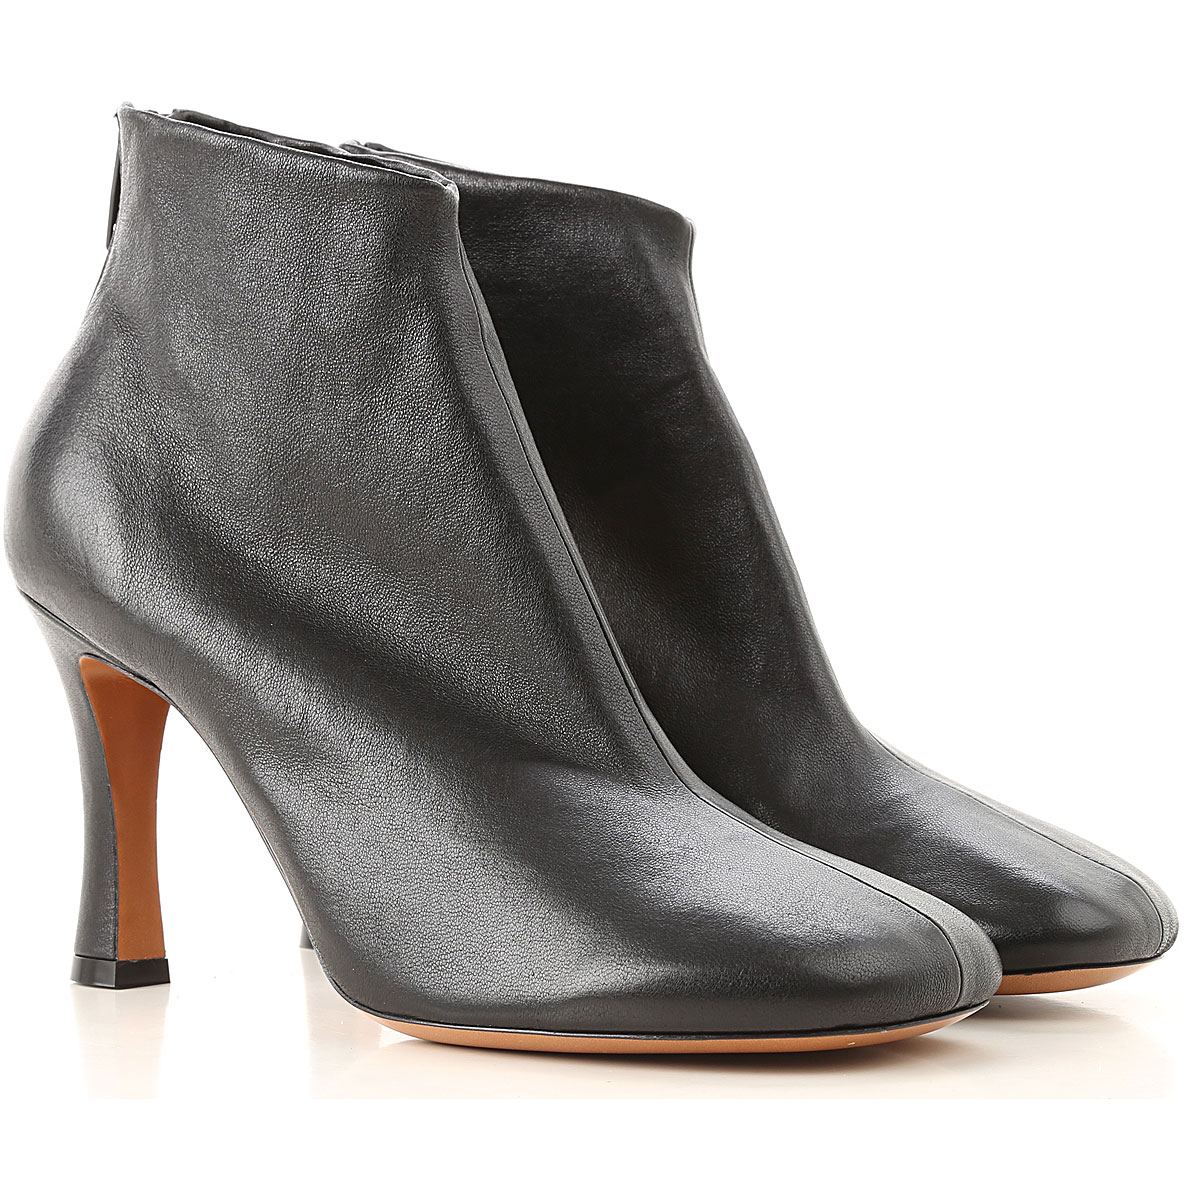 Image of Celine Boots for Women, Booties, Black, Leather, 2017, 6 7 8 9